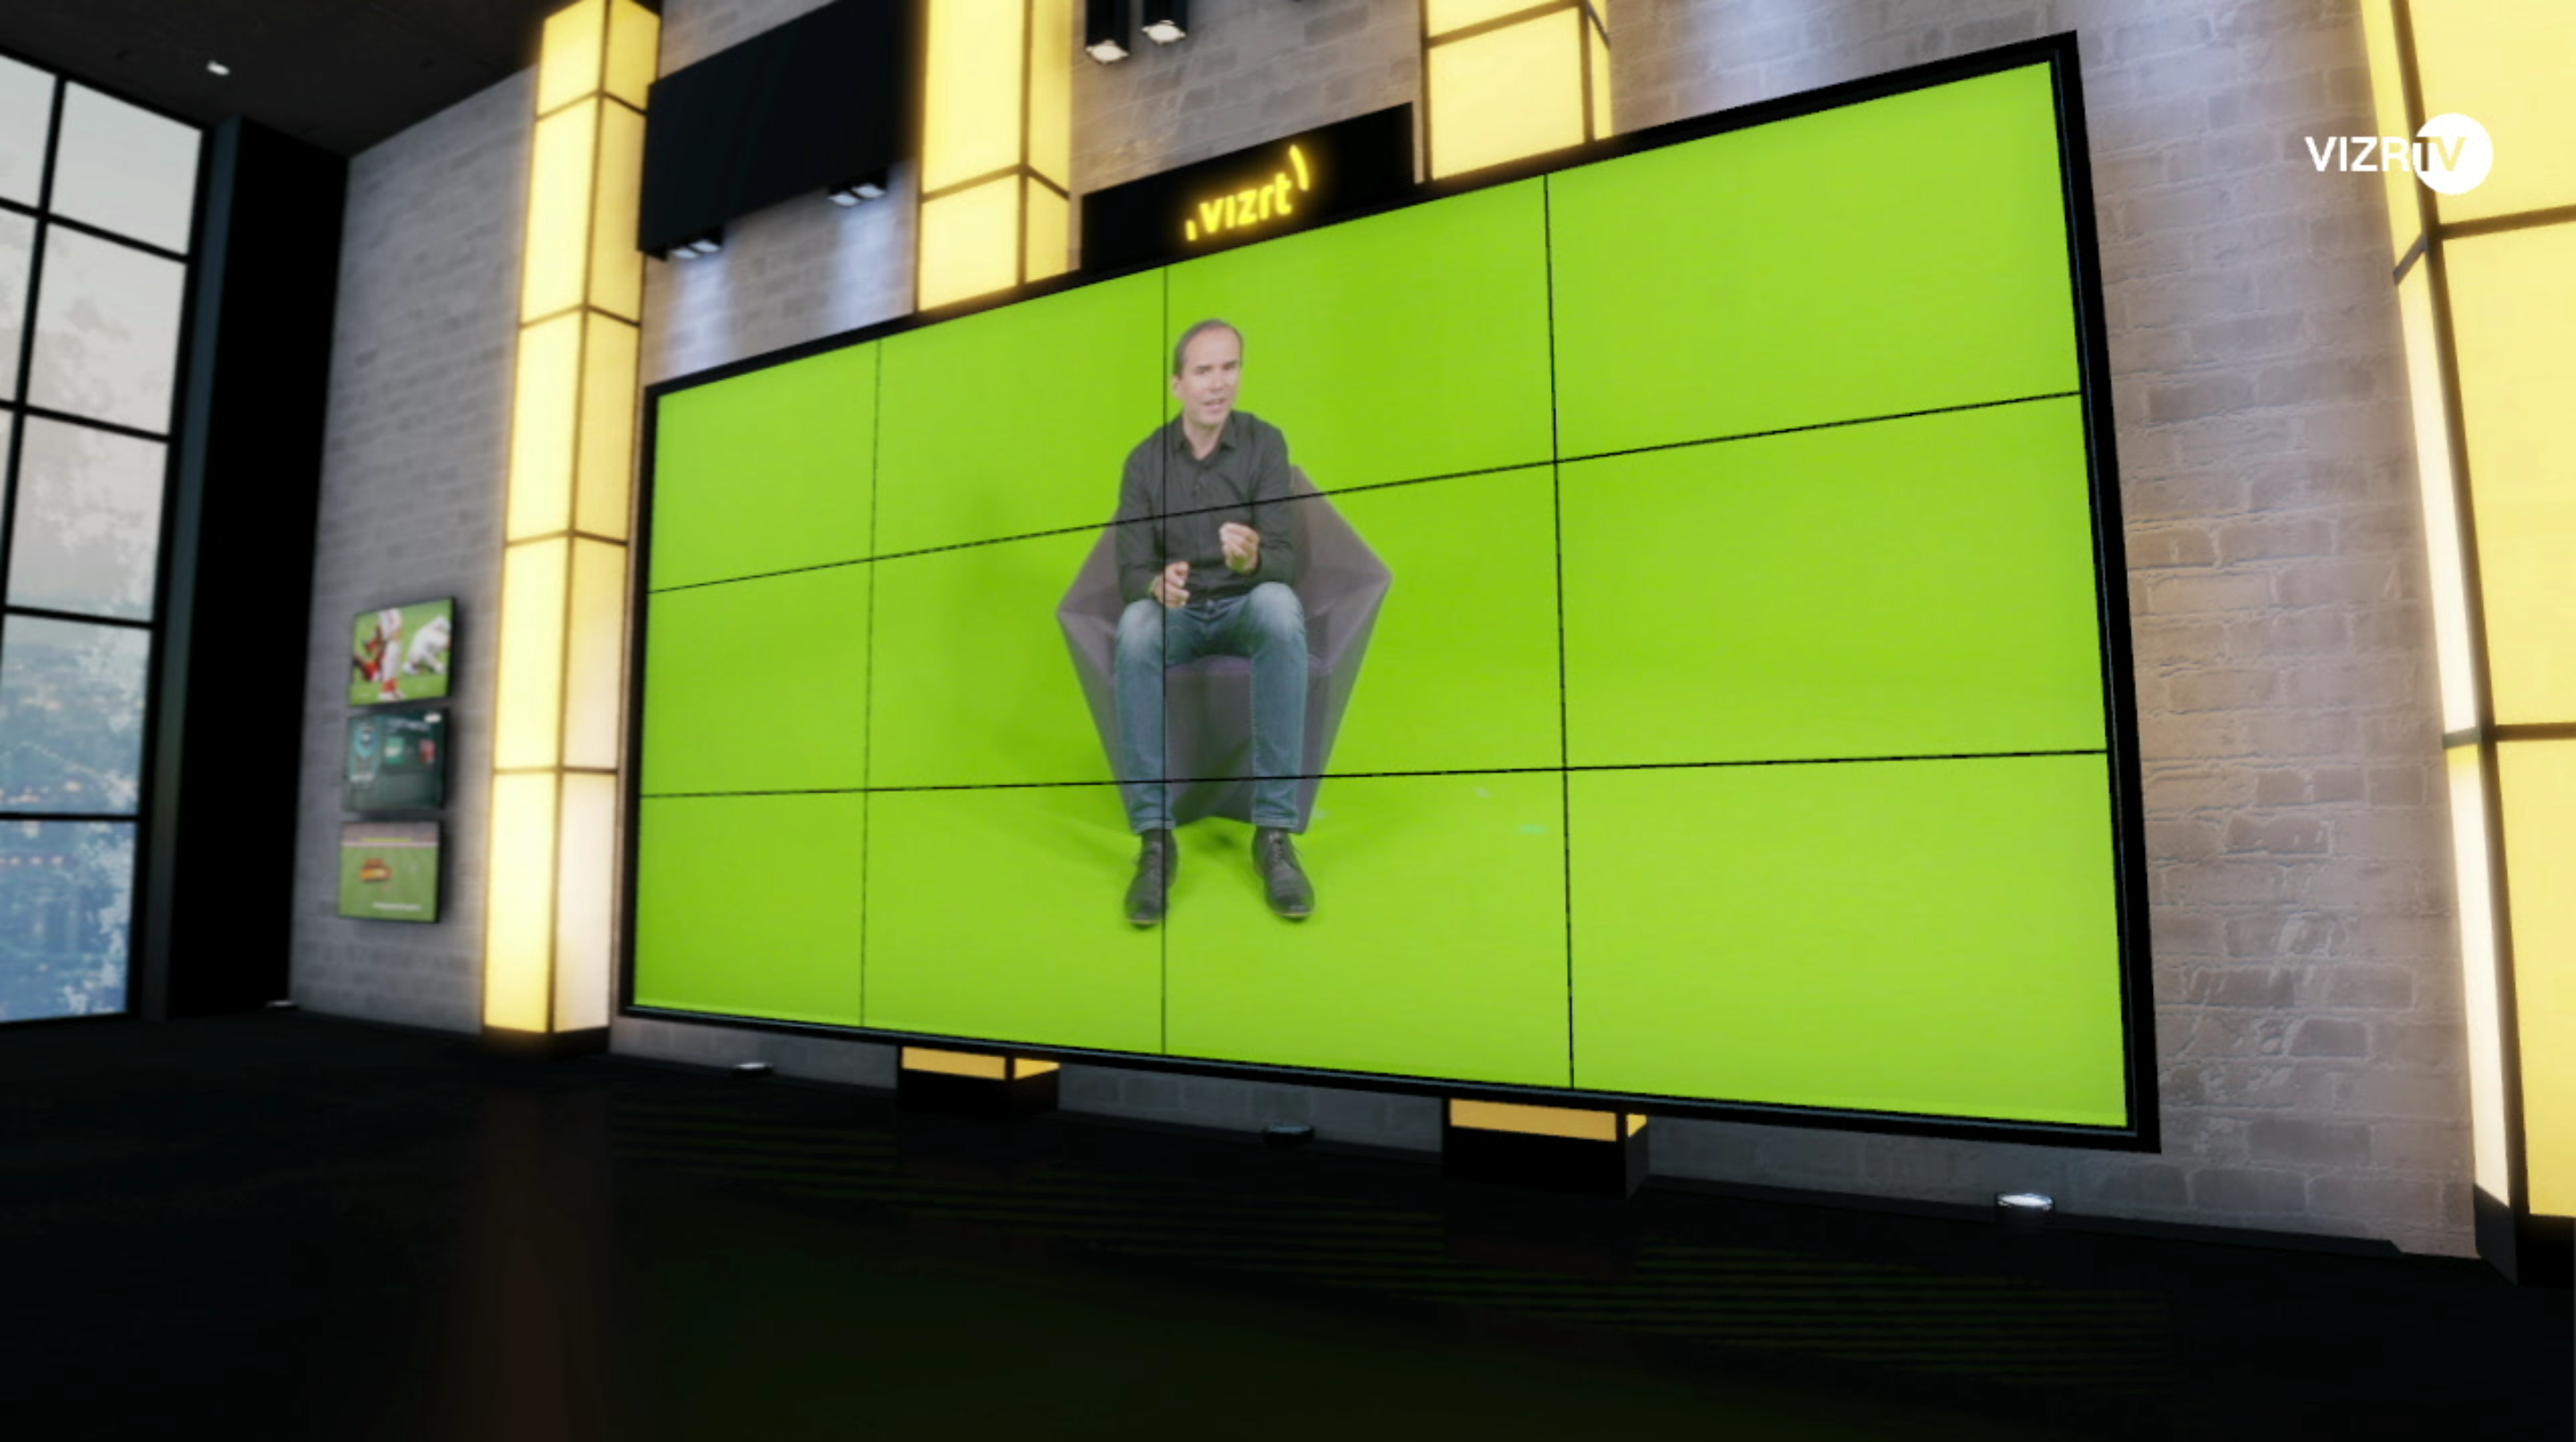 Green Room interview on a 3x4 videowall